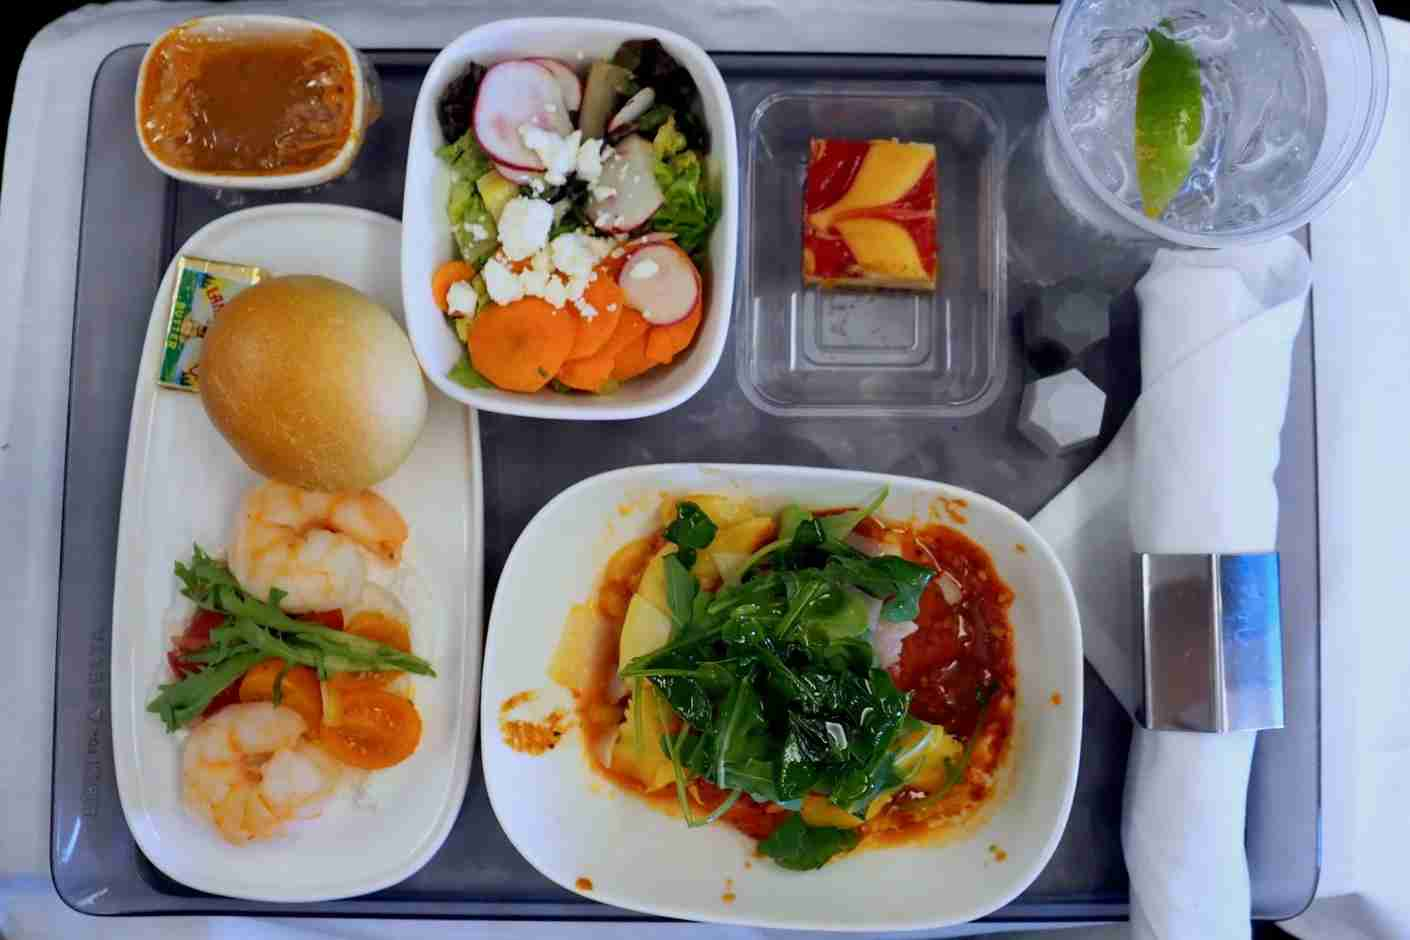 Plane time is the right time for a family meal.